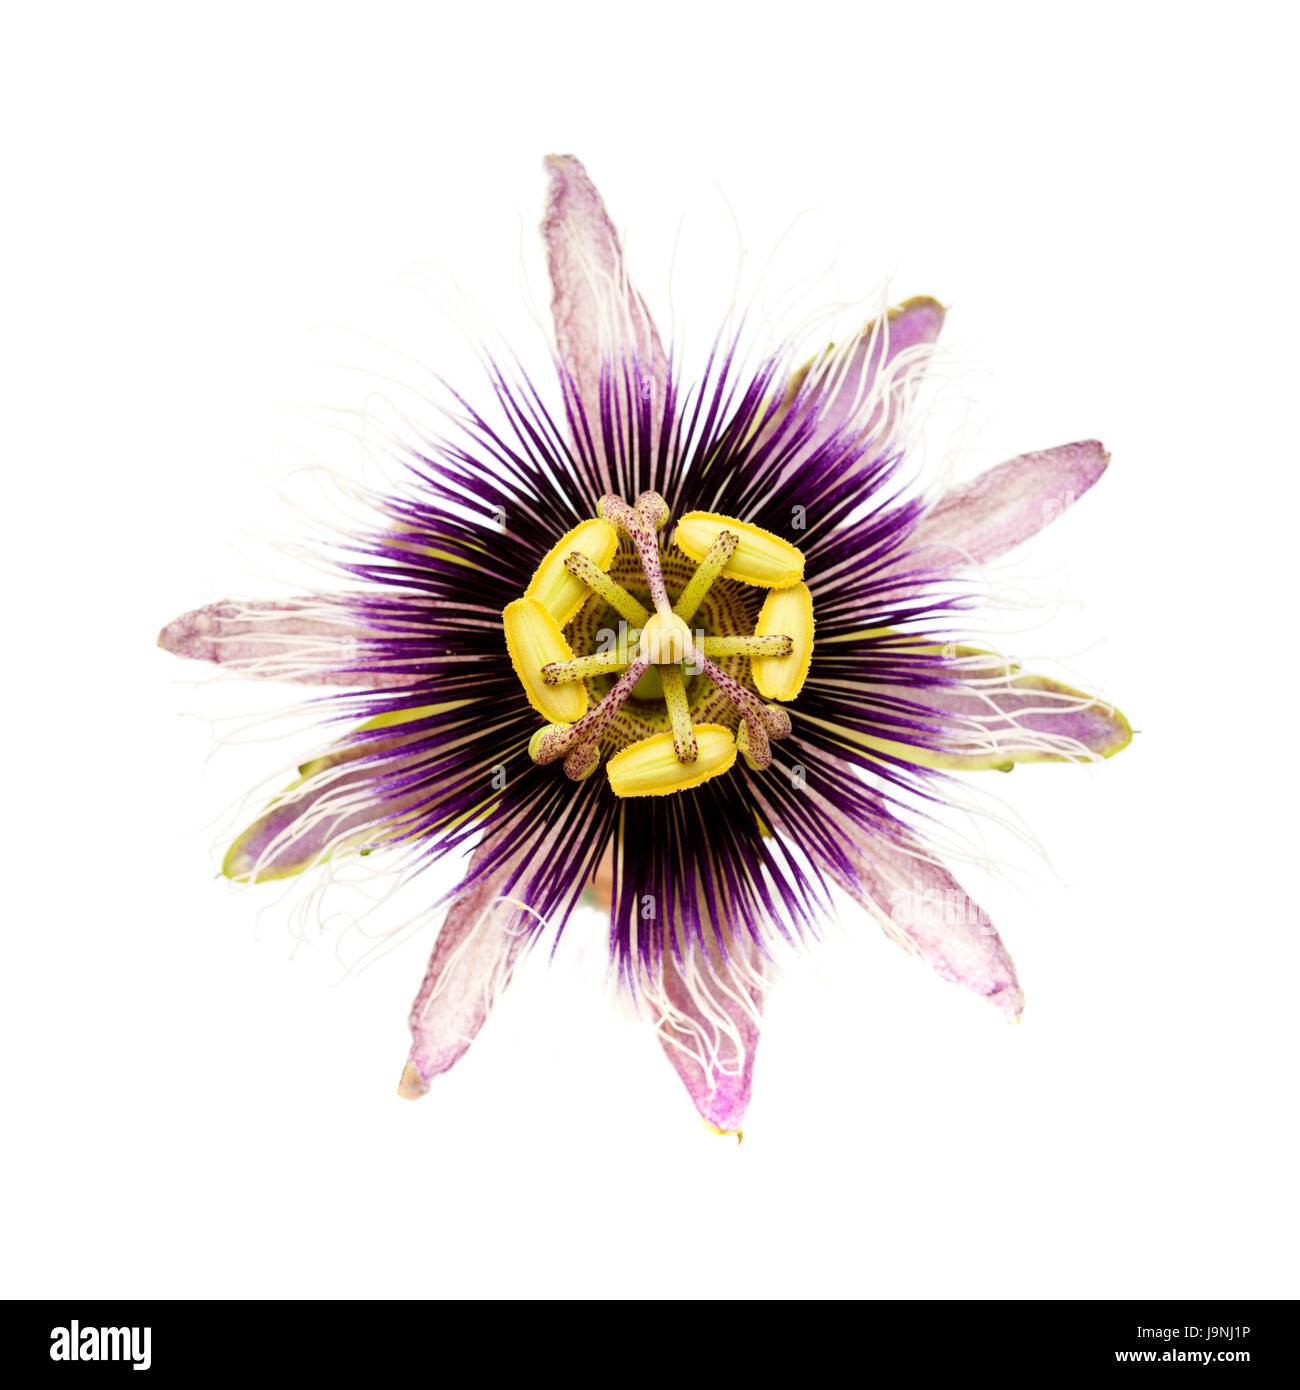 Purple and white passionflower isolated on white background stock stock photo purple and white passionflower isolated on white background dhlflorist Images